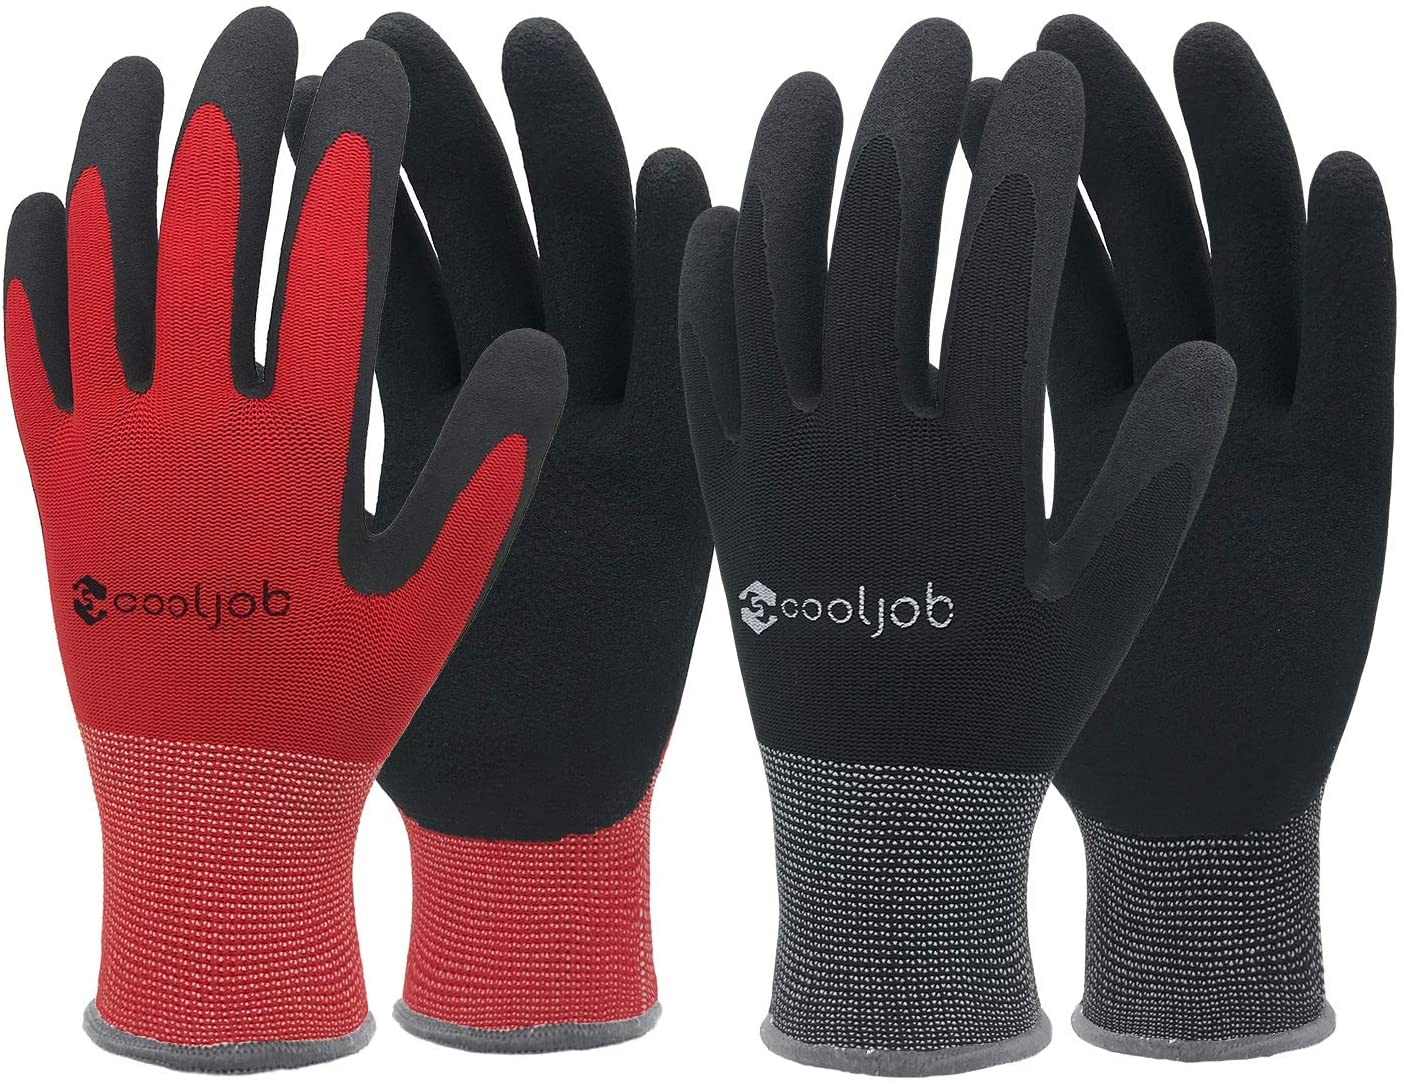 Black /& Red Men/'s Medium Size Fits Most 6 Pairs breathable Rubber Coated Garden Gloves COOLJOB Gardening Gloves for Men Work Gloves for Men Half Dozen M